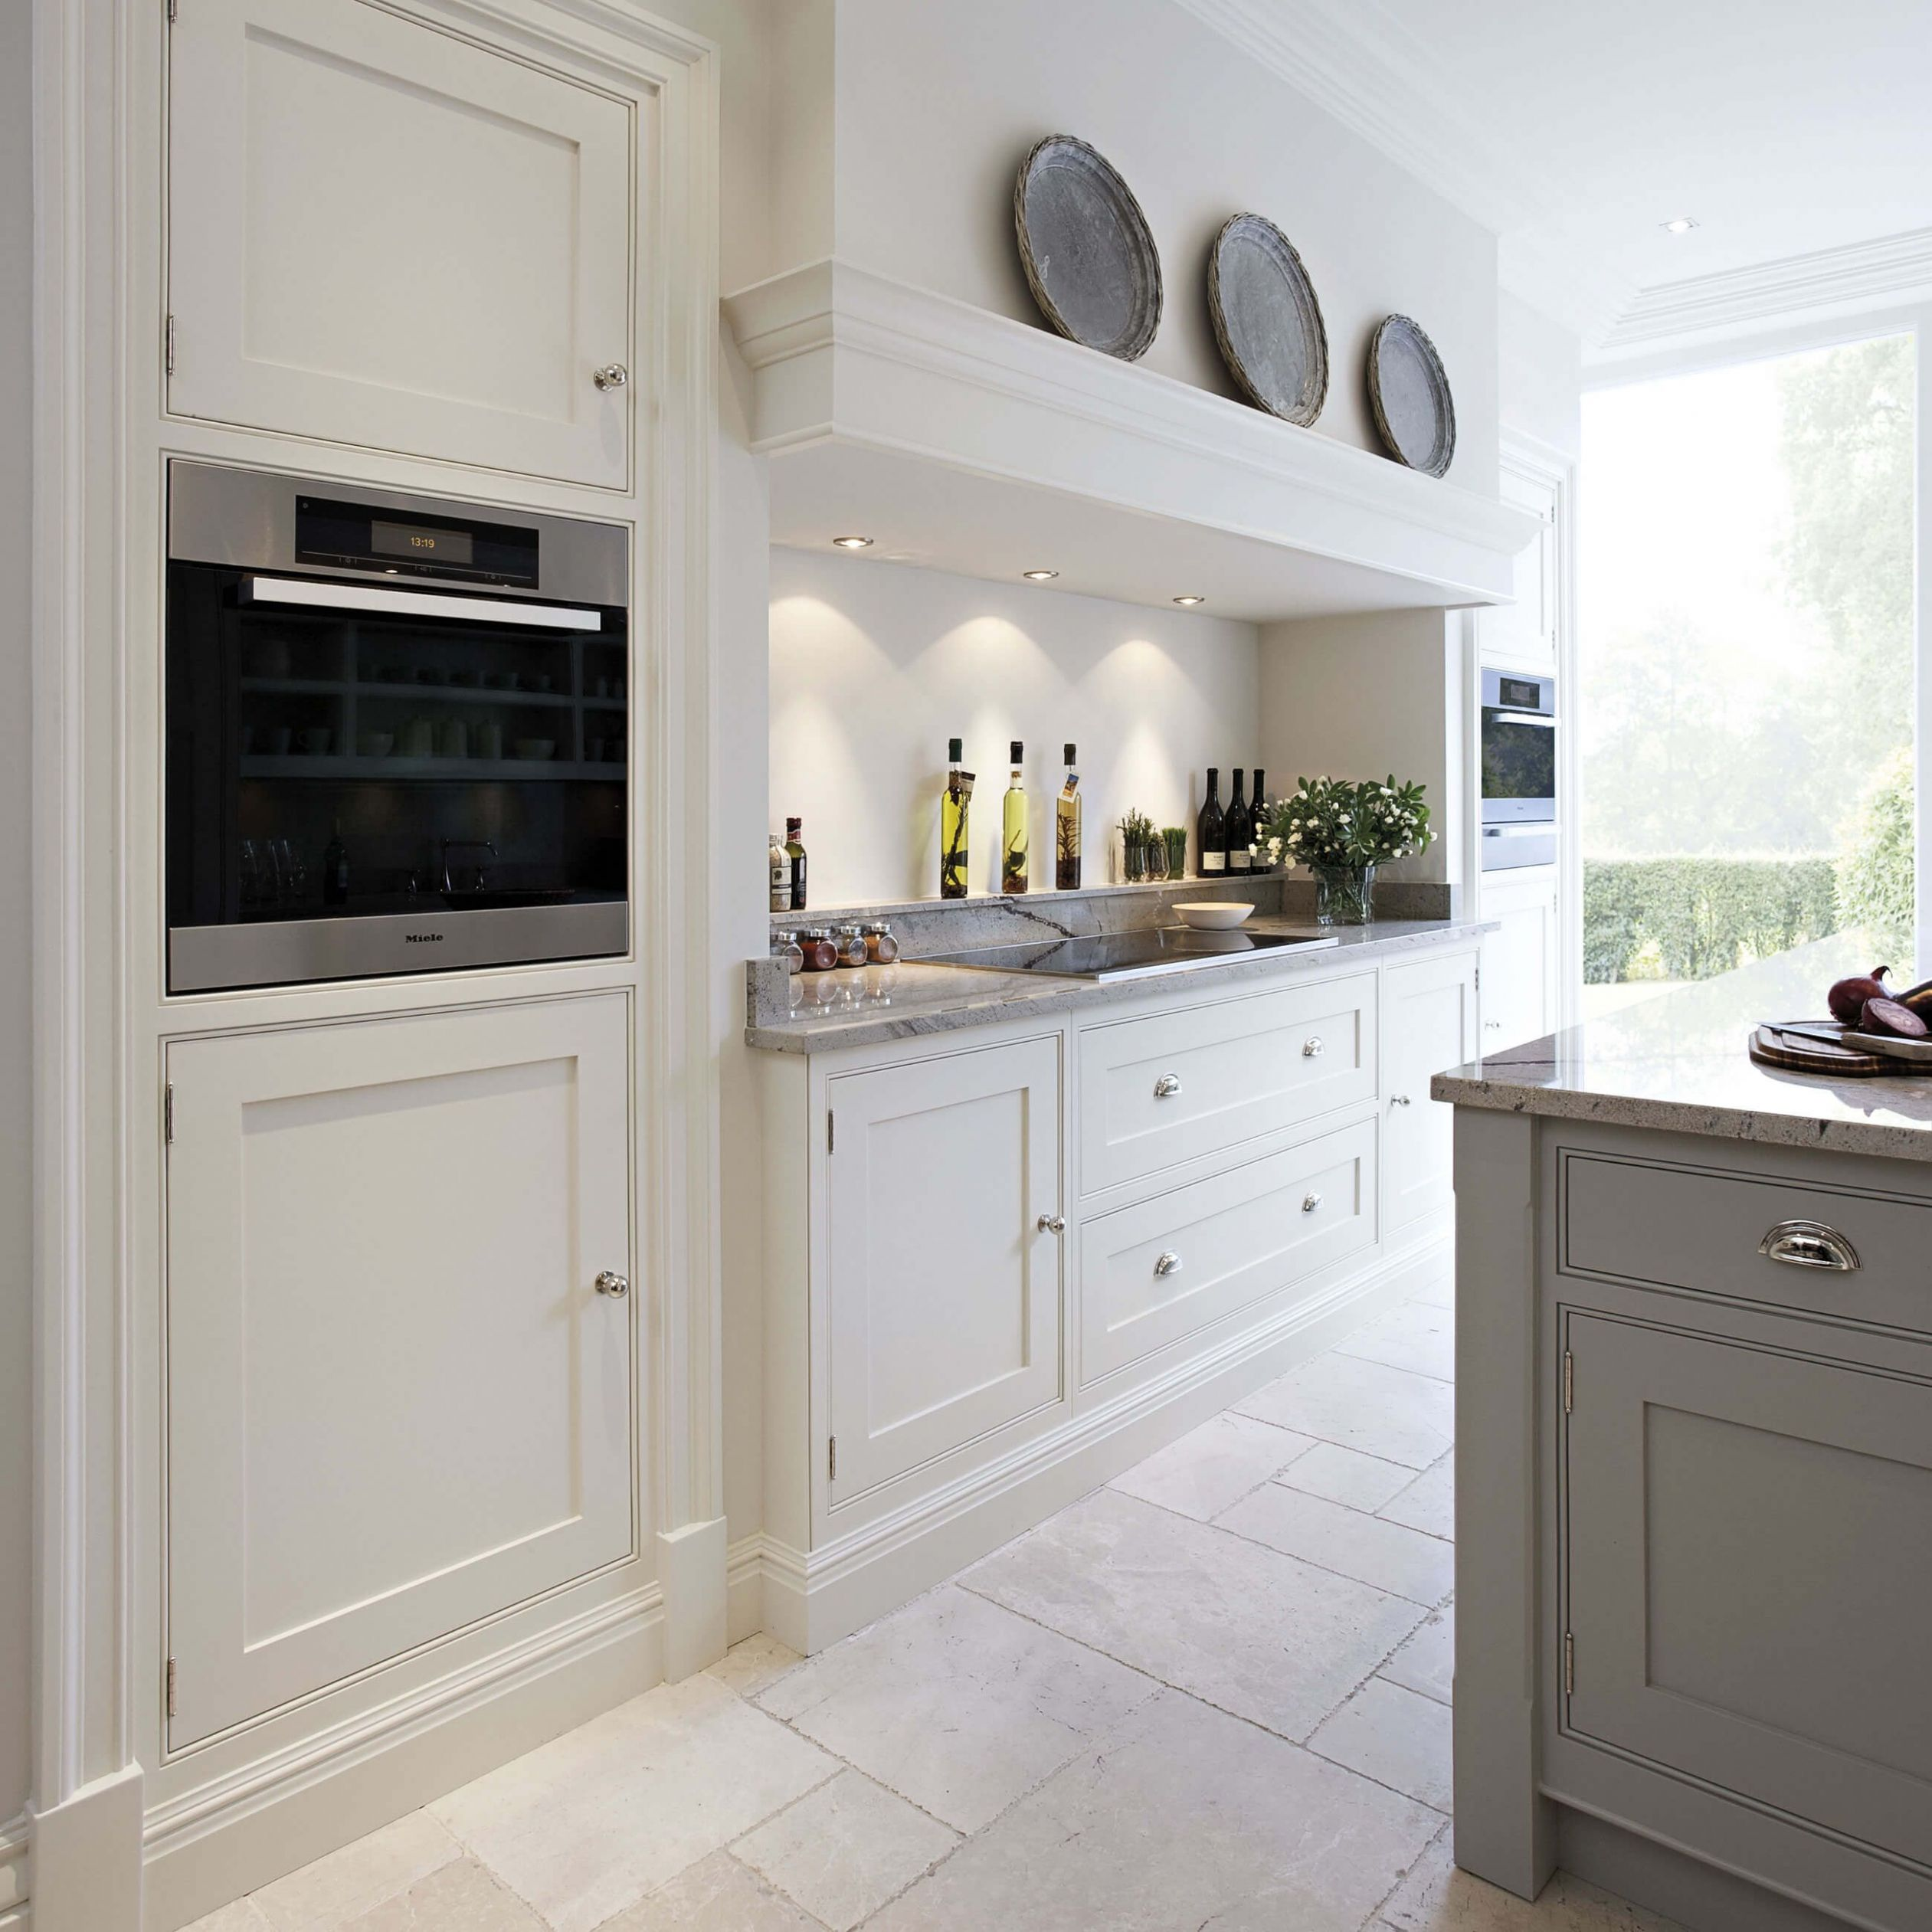 Contemporary Shaker Kitchen (With images) | Modern shaker kitchen ...